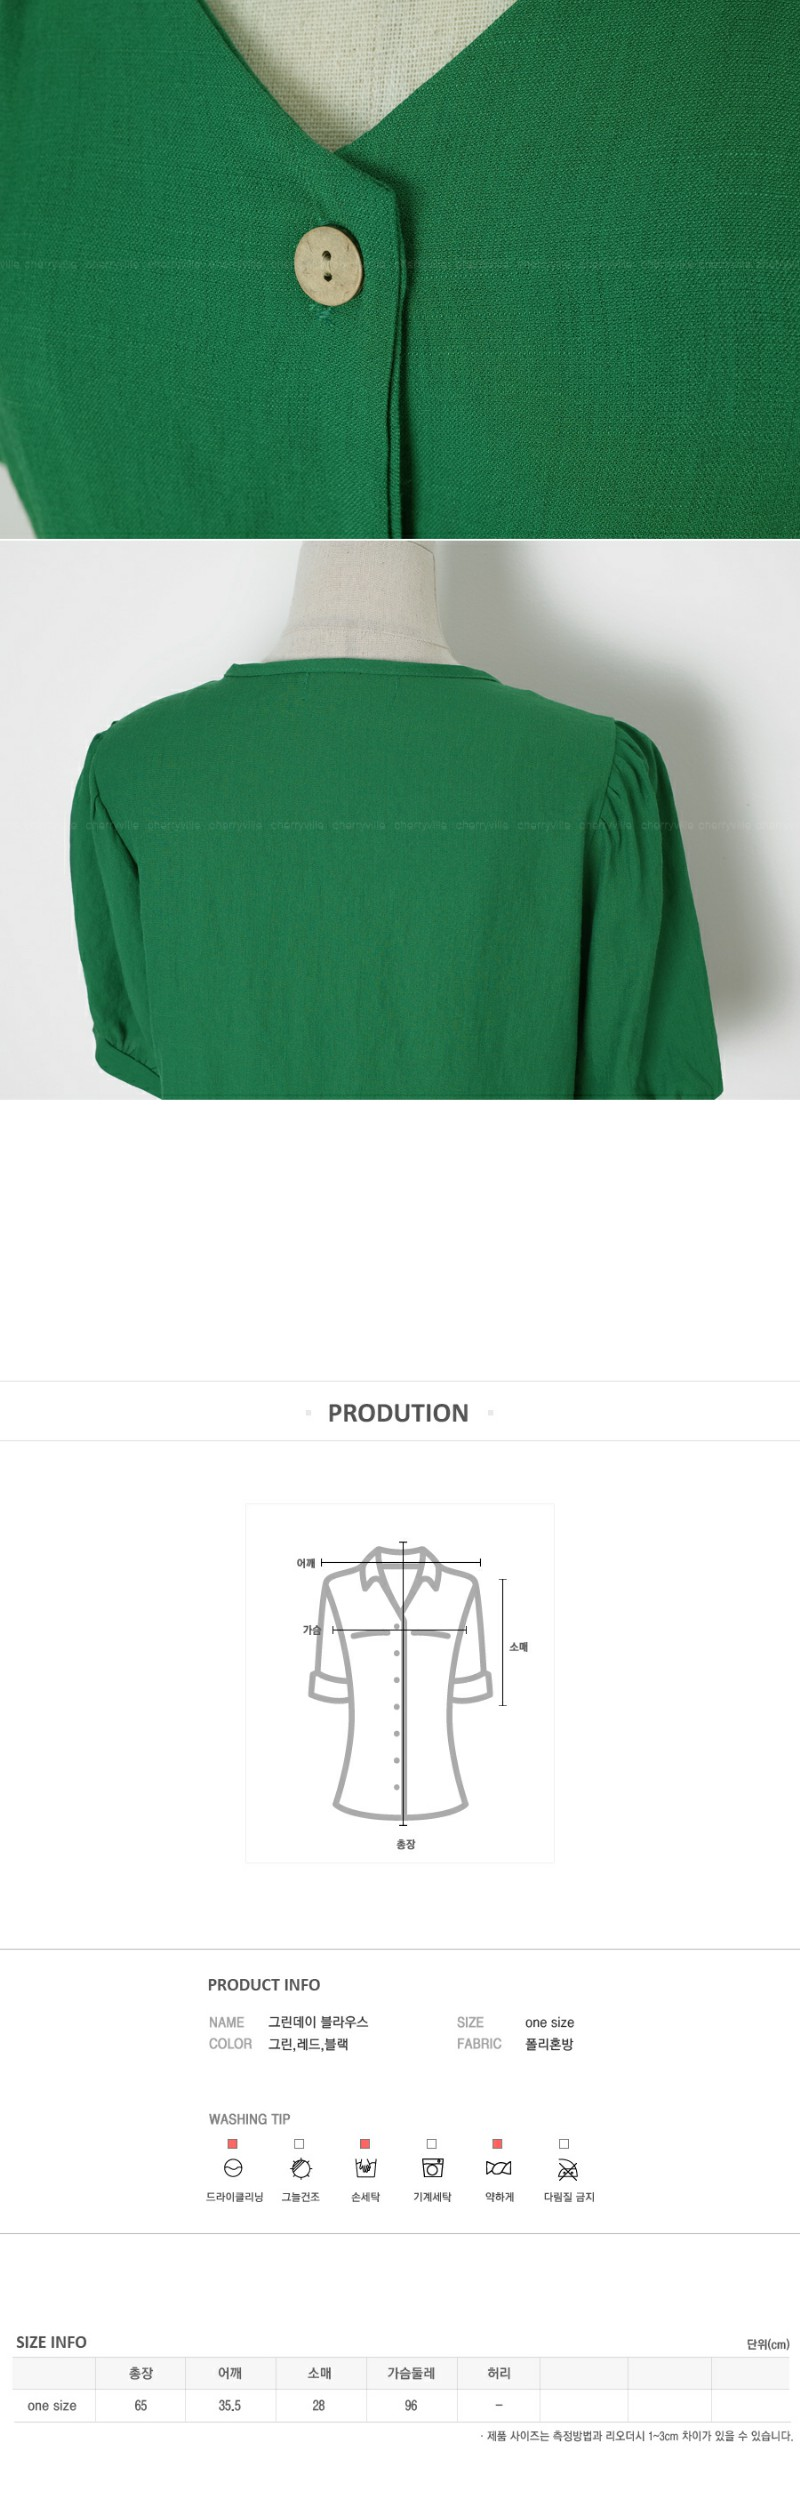 Green Day blouse